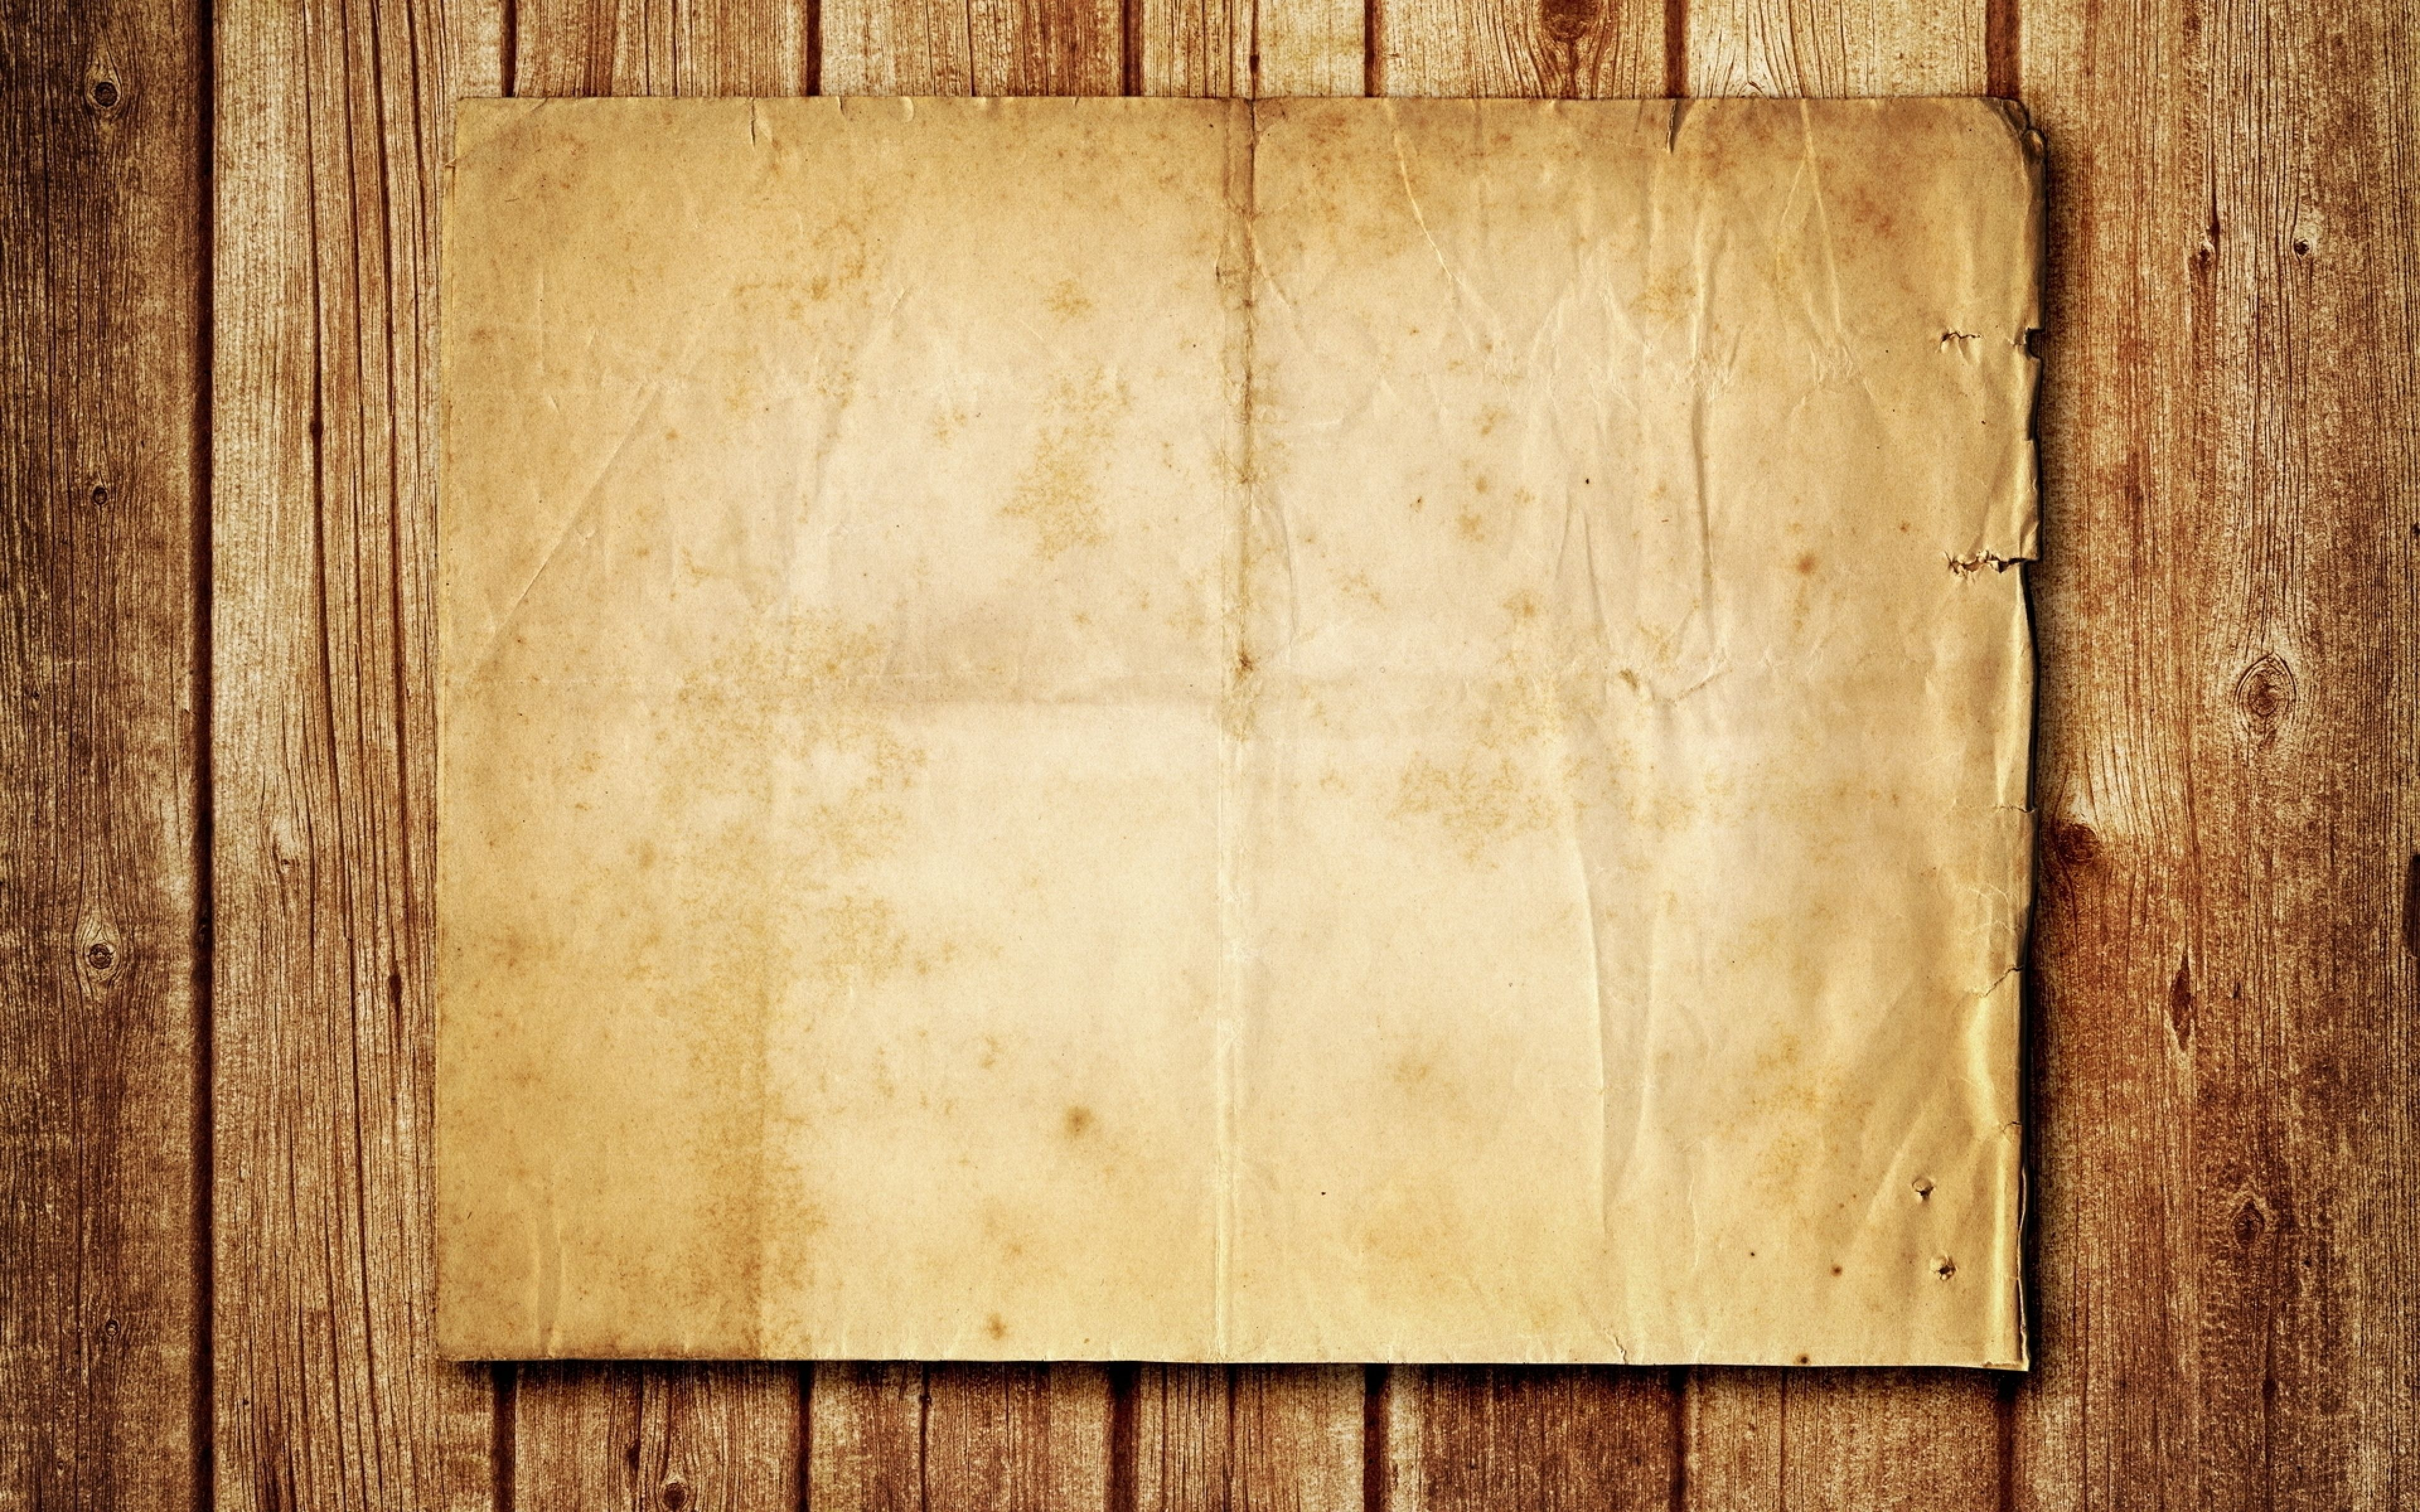 Wooden Desktop Rustic Wood Desktop Wallpaper Full Hd Mekamak Hd